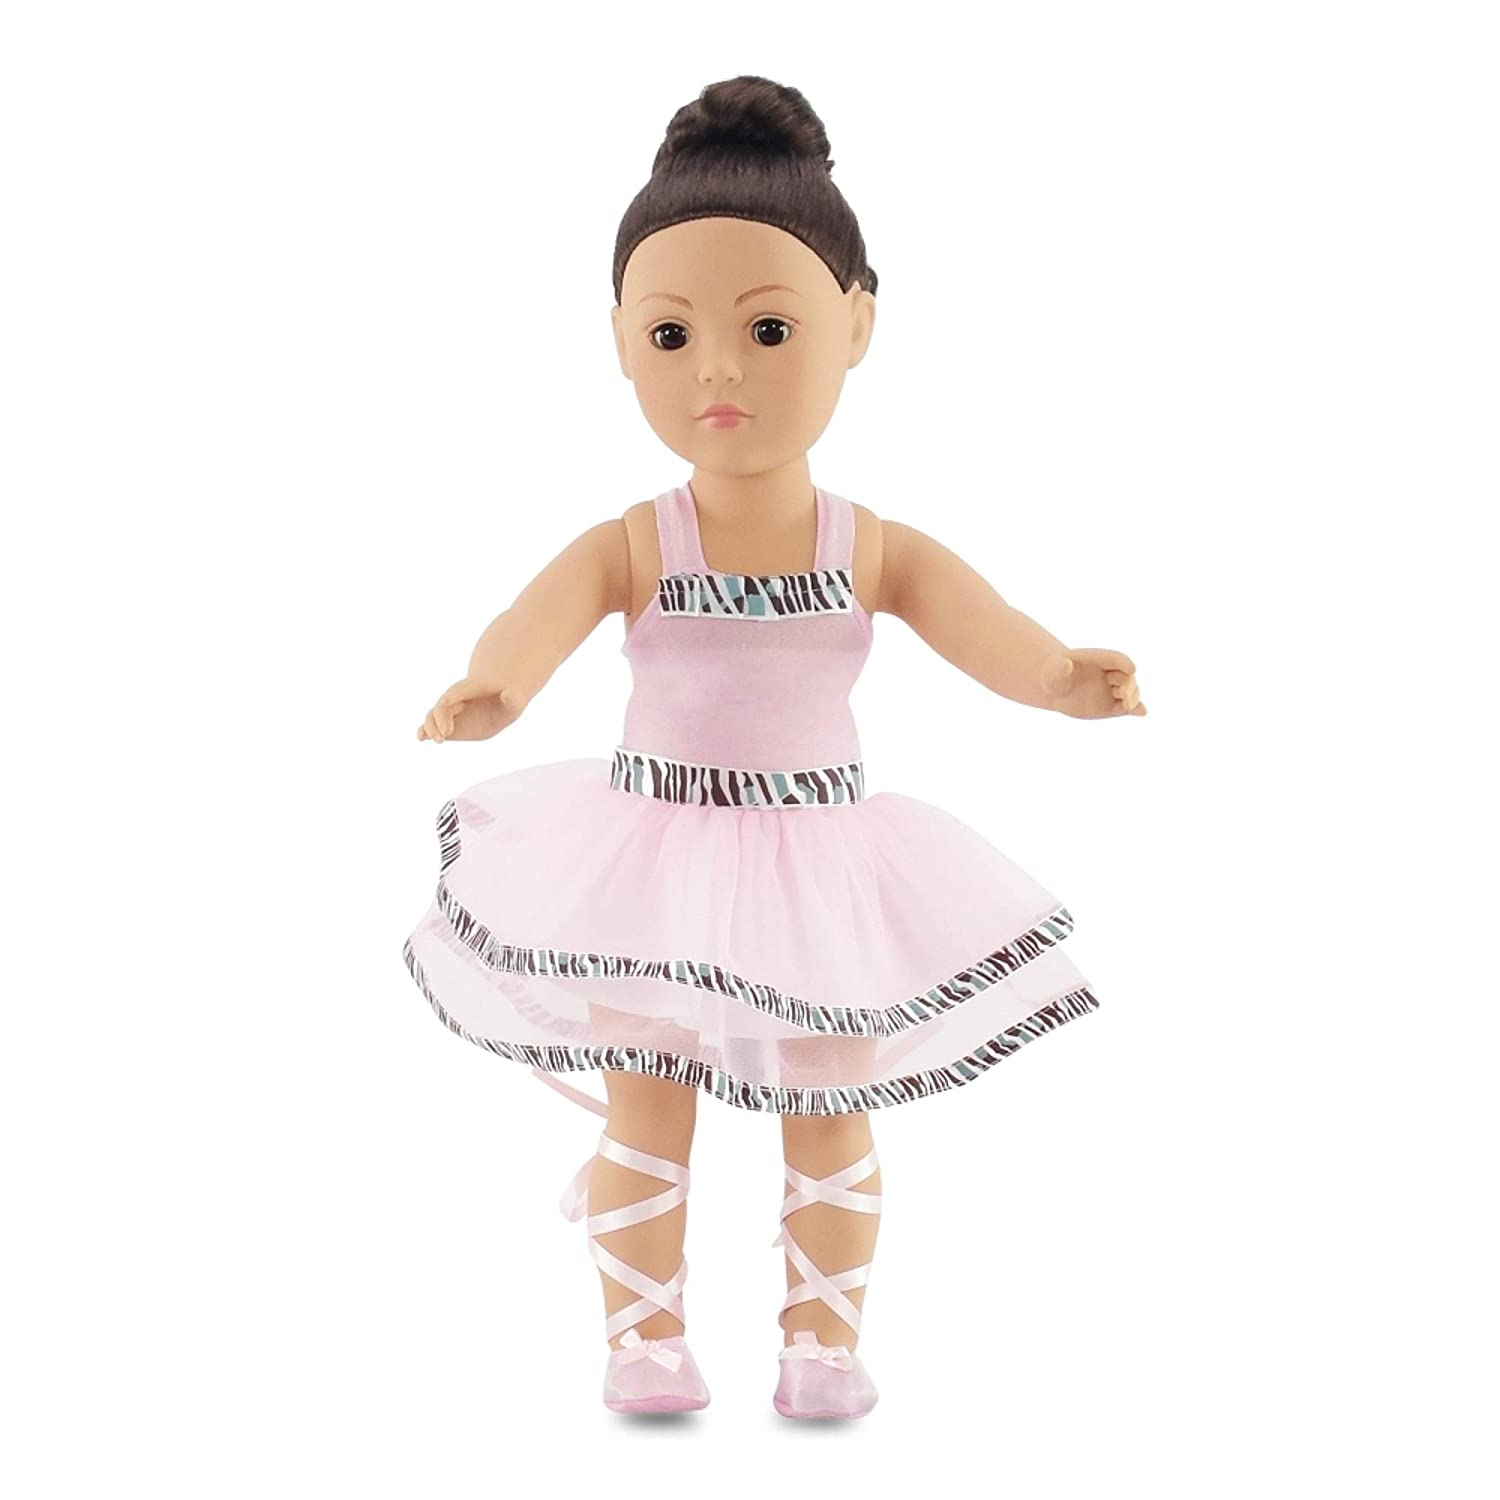 Amazon com fits american girl doll ballet ballerina dance outfit 18 inch doll clothes clothing includes 18 shoes toys games